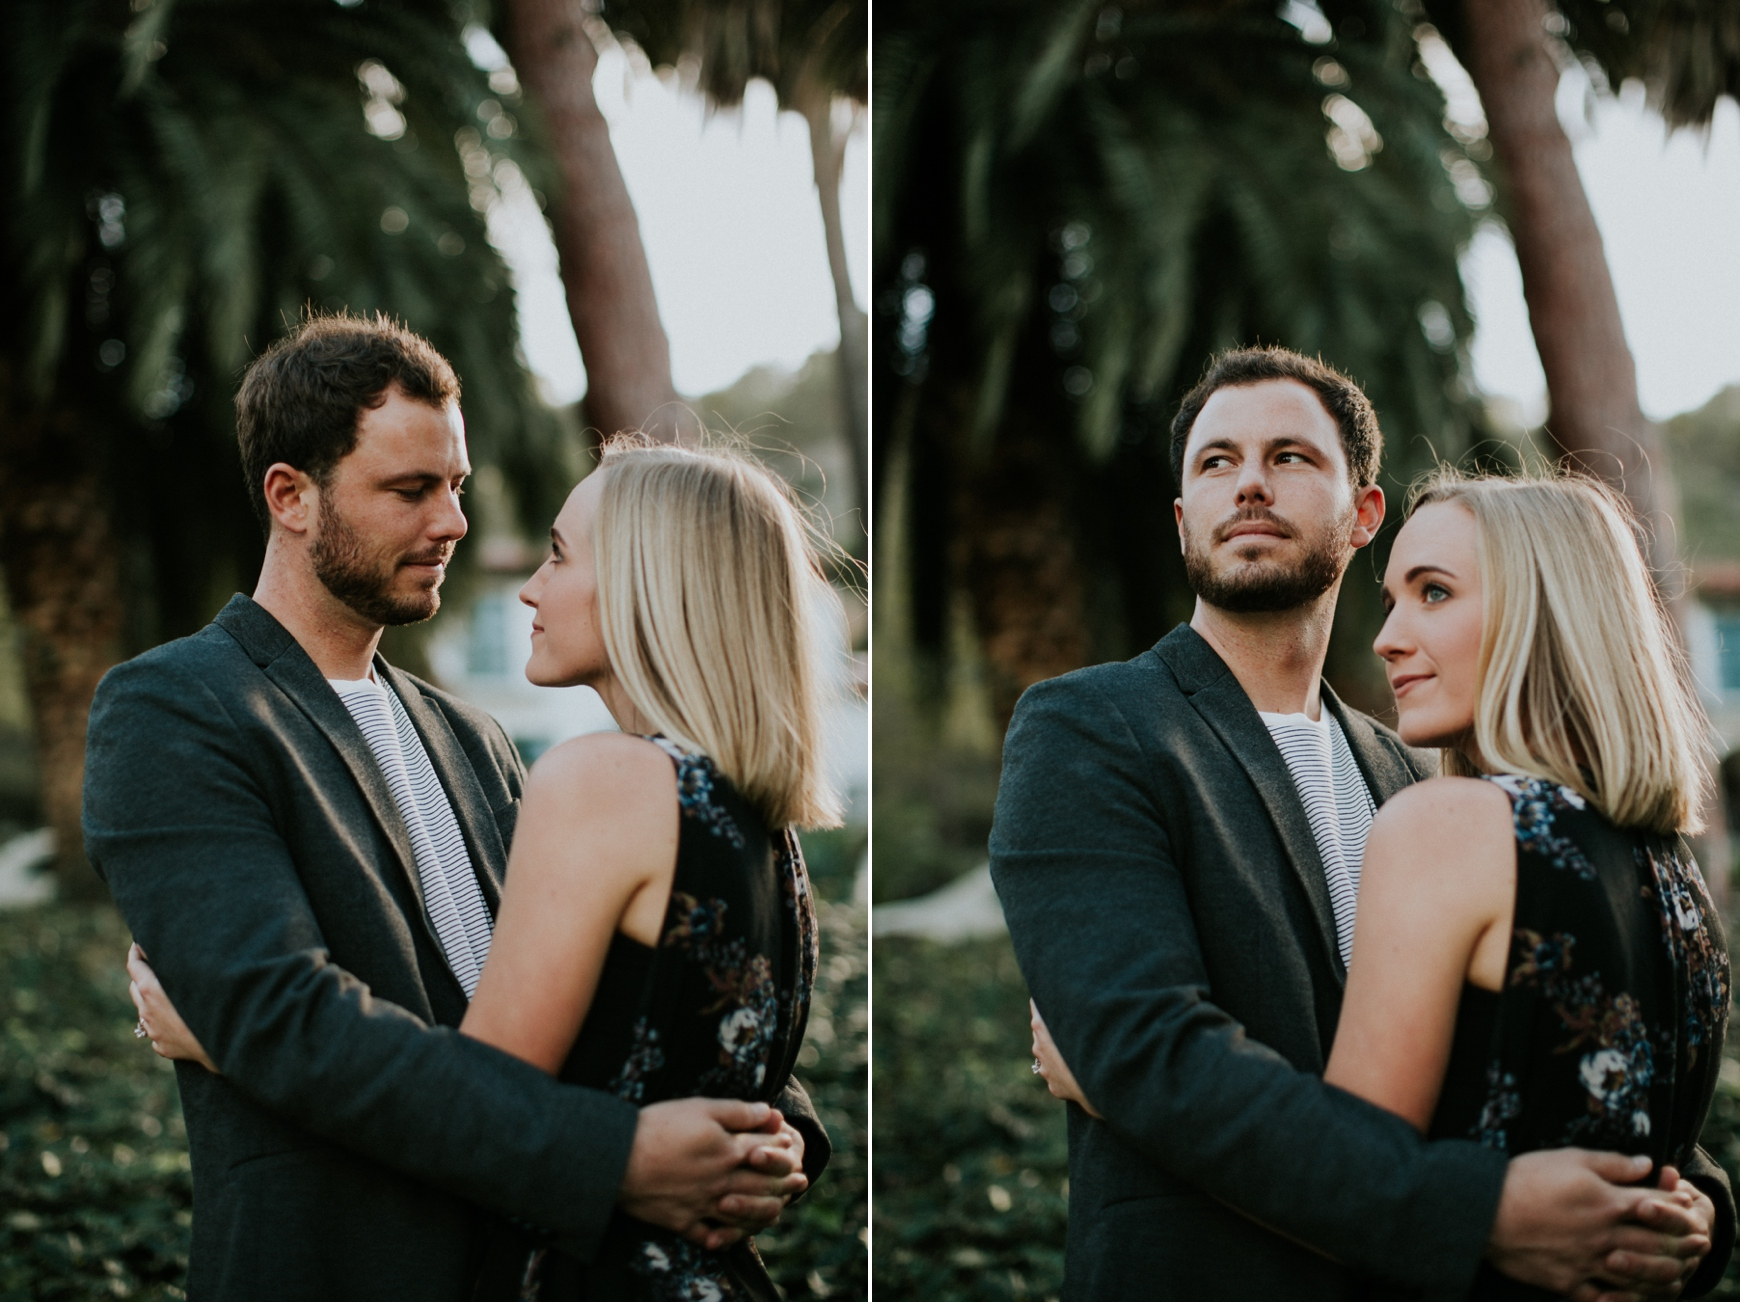 Palos Verdes Engagement, Palos Verdes photographer, southern california photographer, california wedding photographer, destination wedding photographer, engagement session, engaged, Danielle and Connor